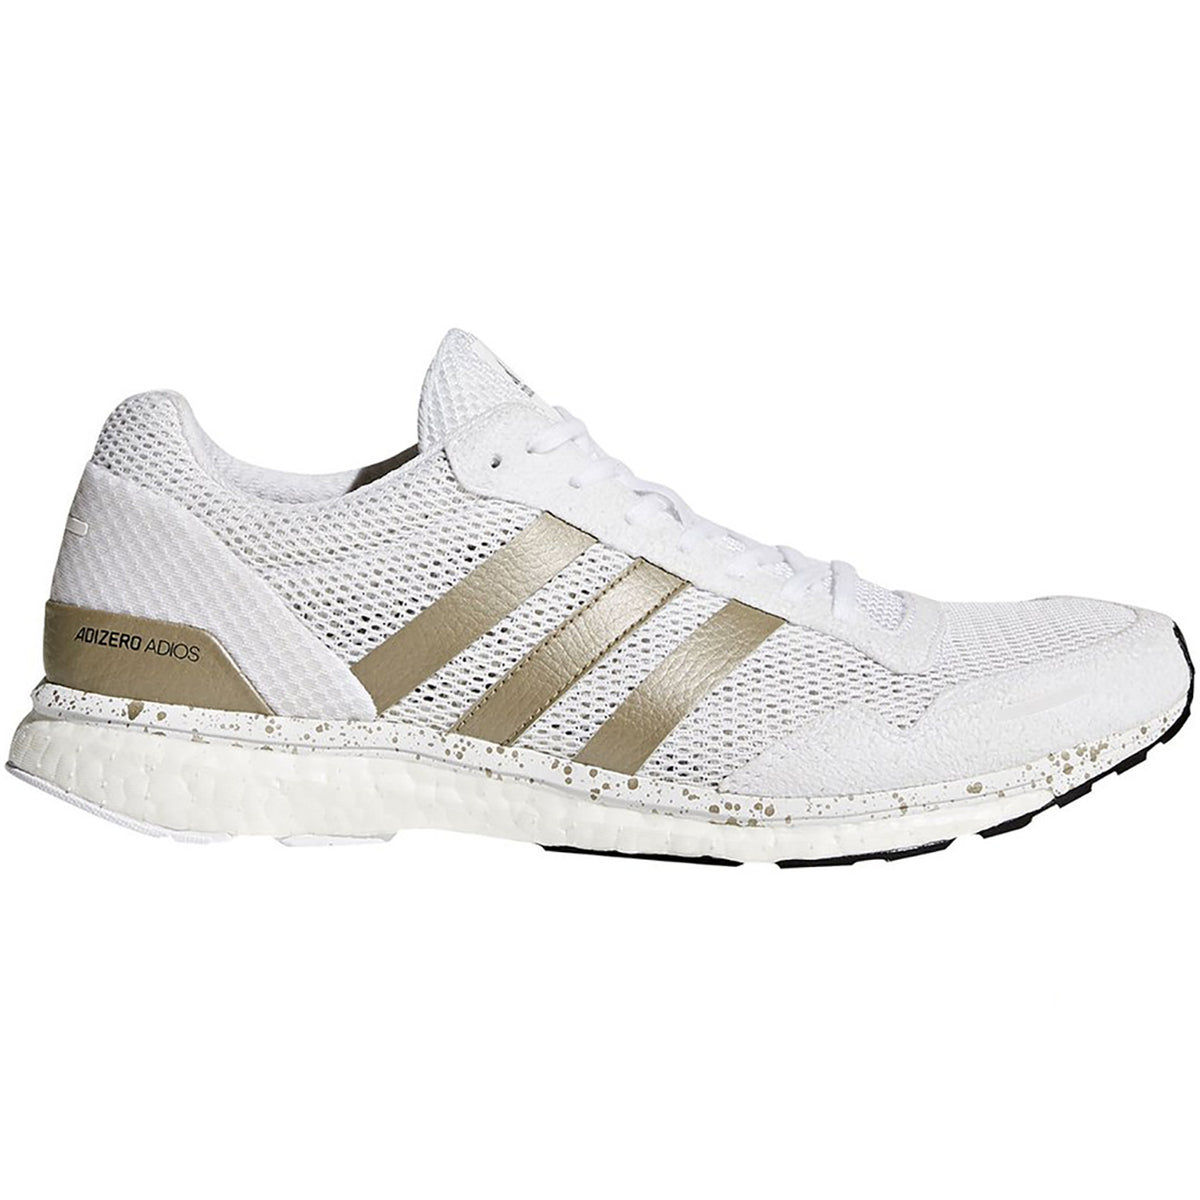 Adizero Adios 3 Shoes | Products in 2019 | Shoes, Blue